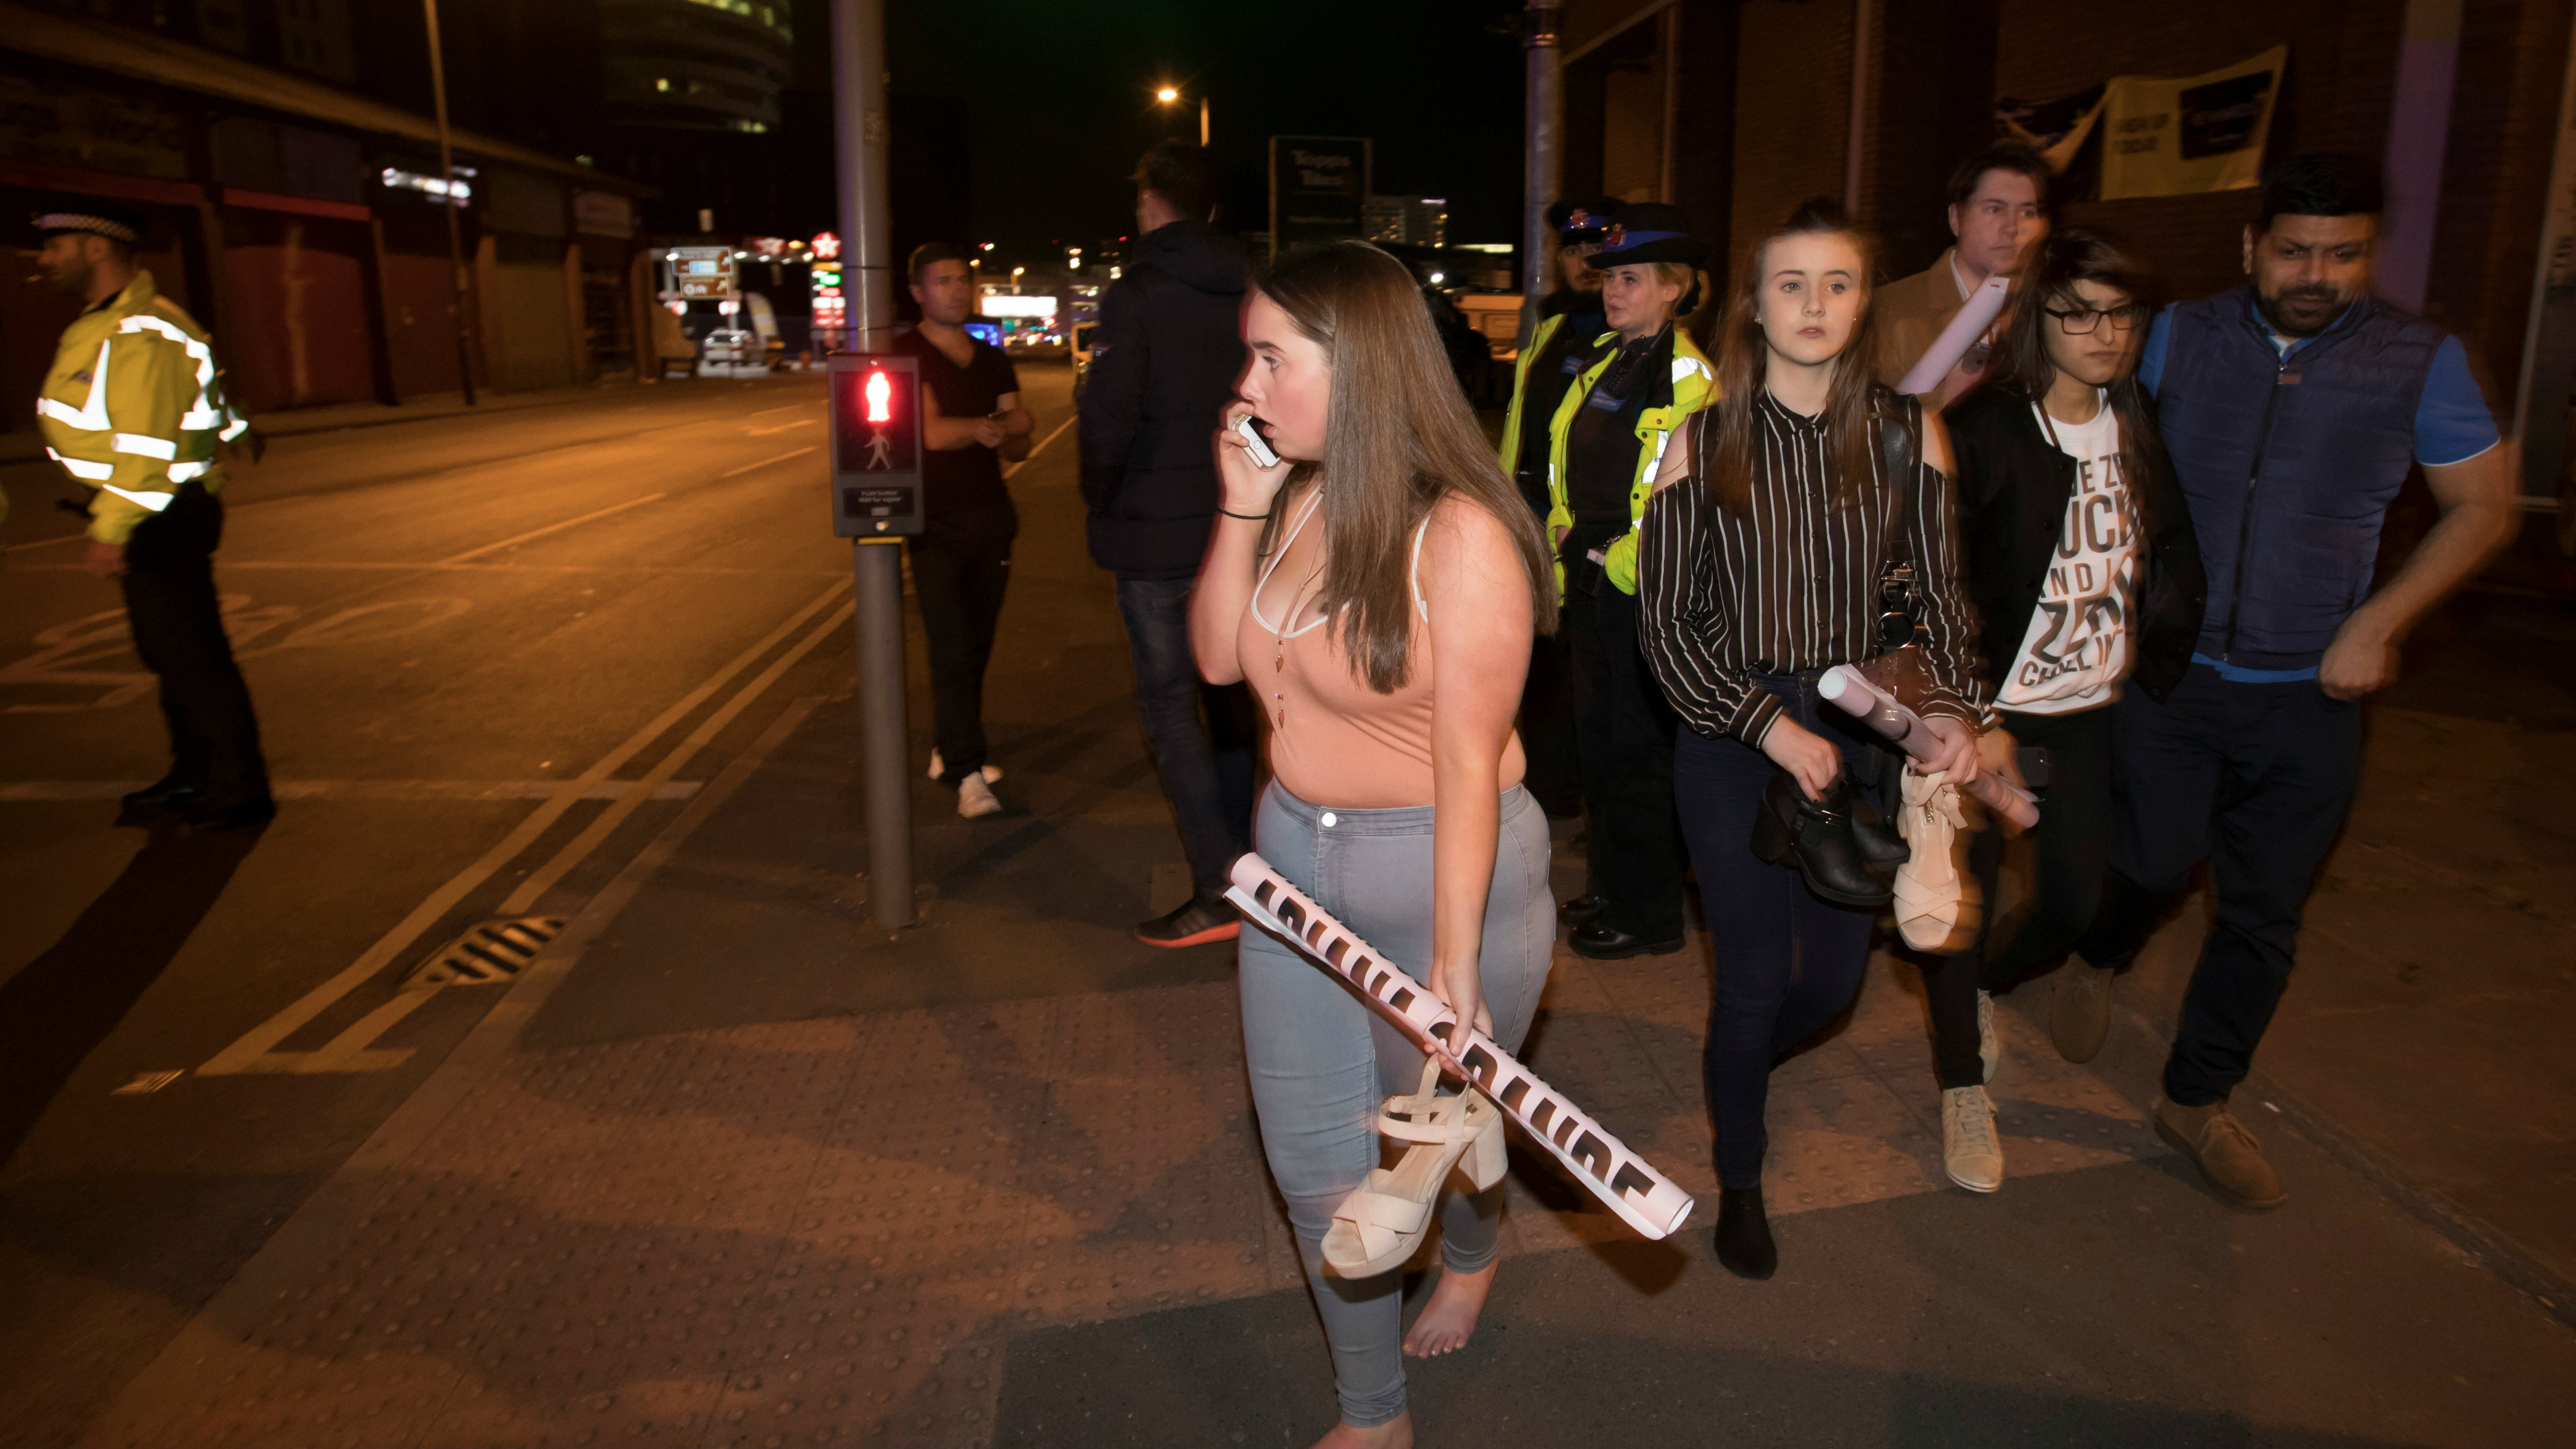 Concert goers react after fleeing the Manchester Arena in northern England where U.S. singer Ariana Grande..